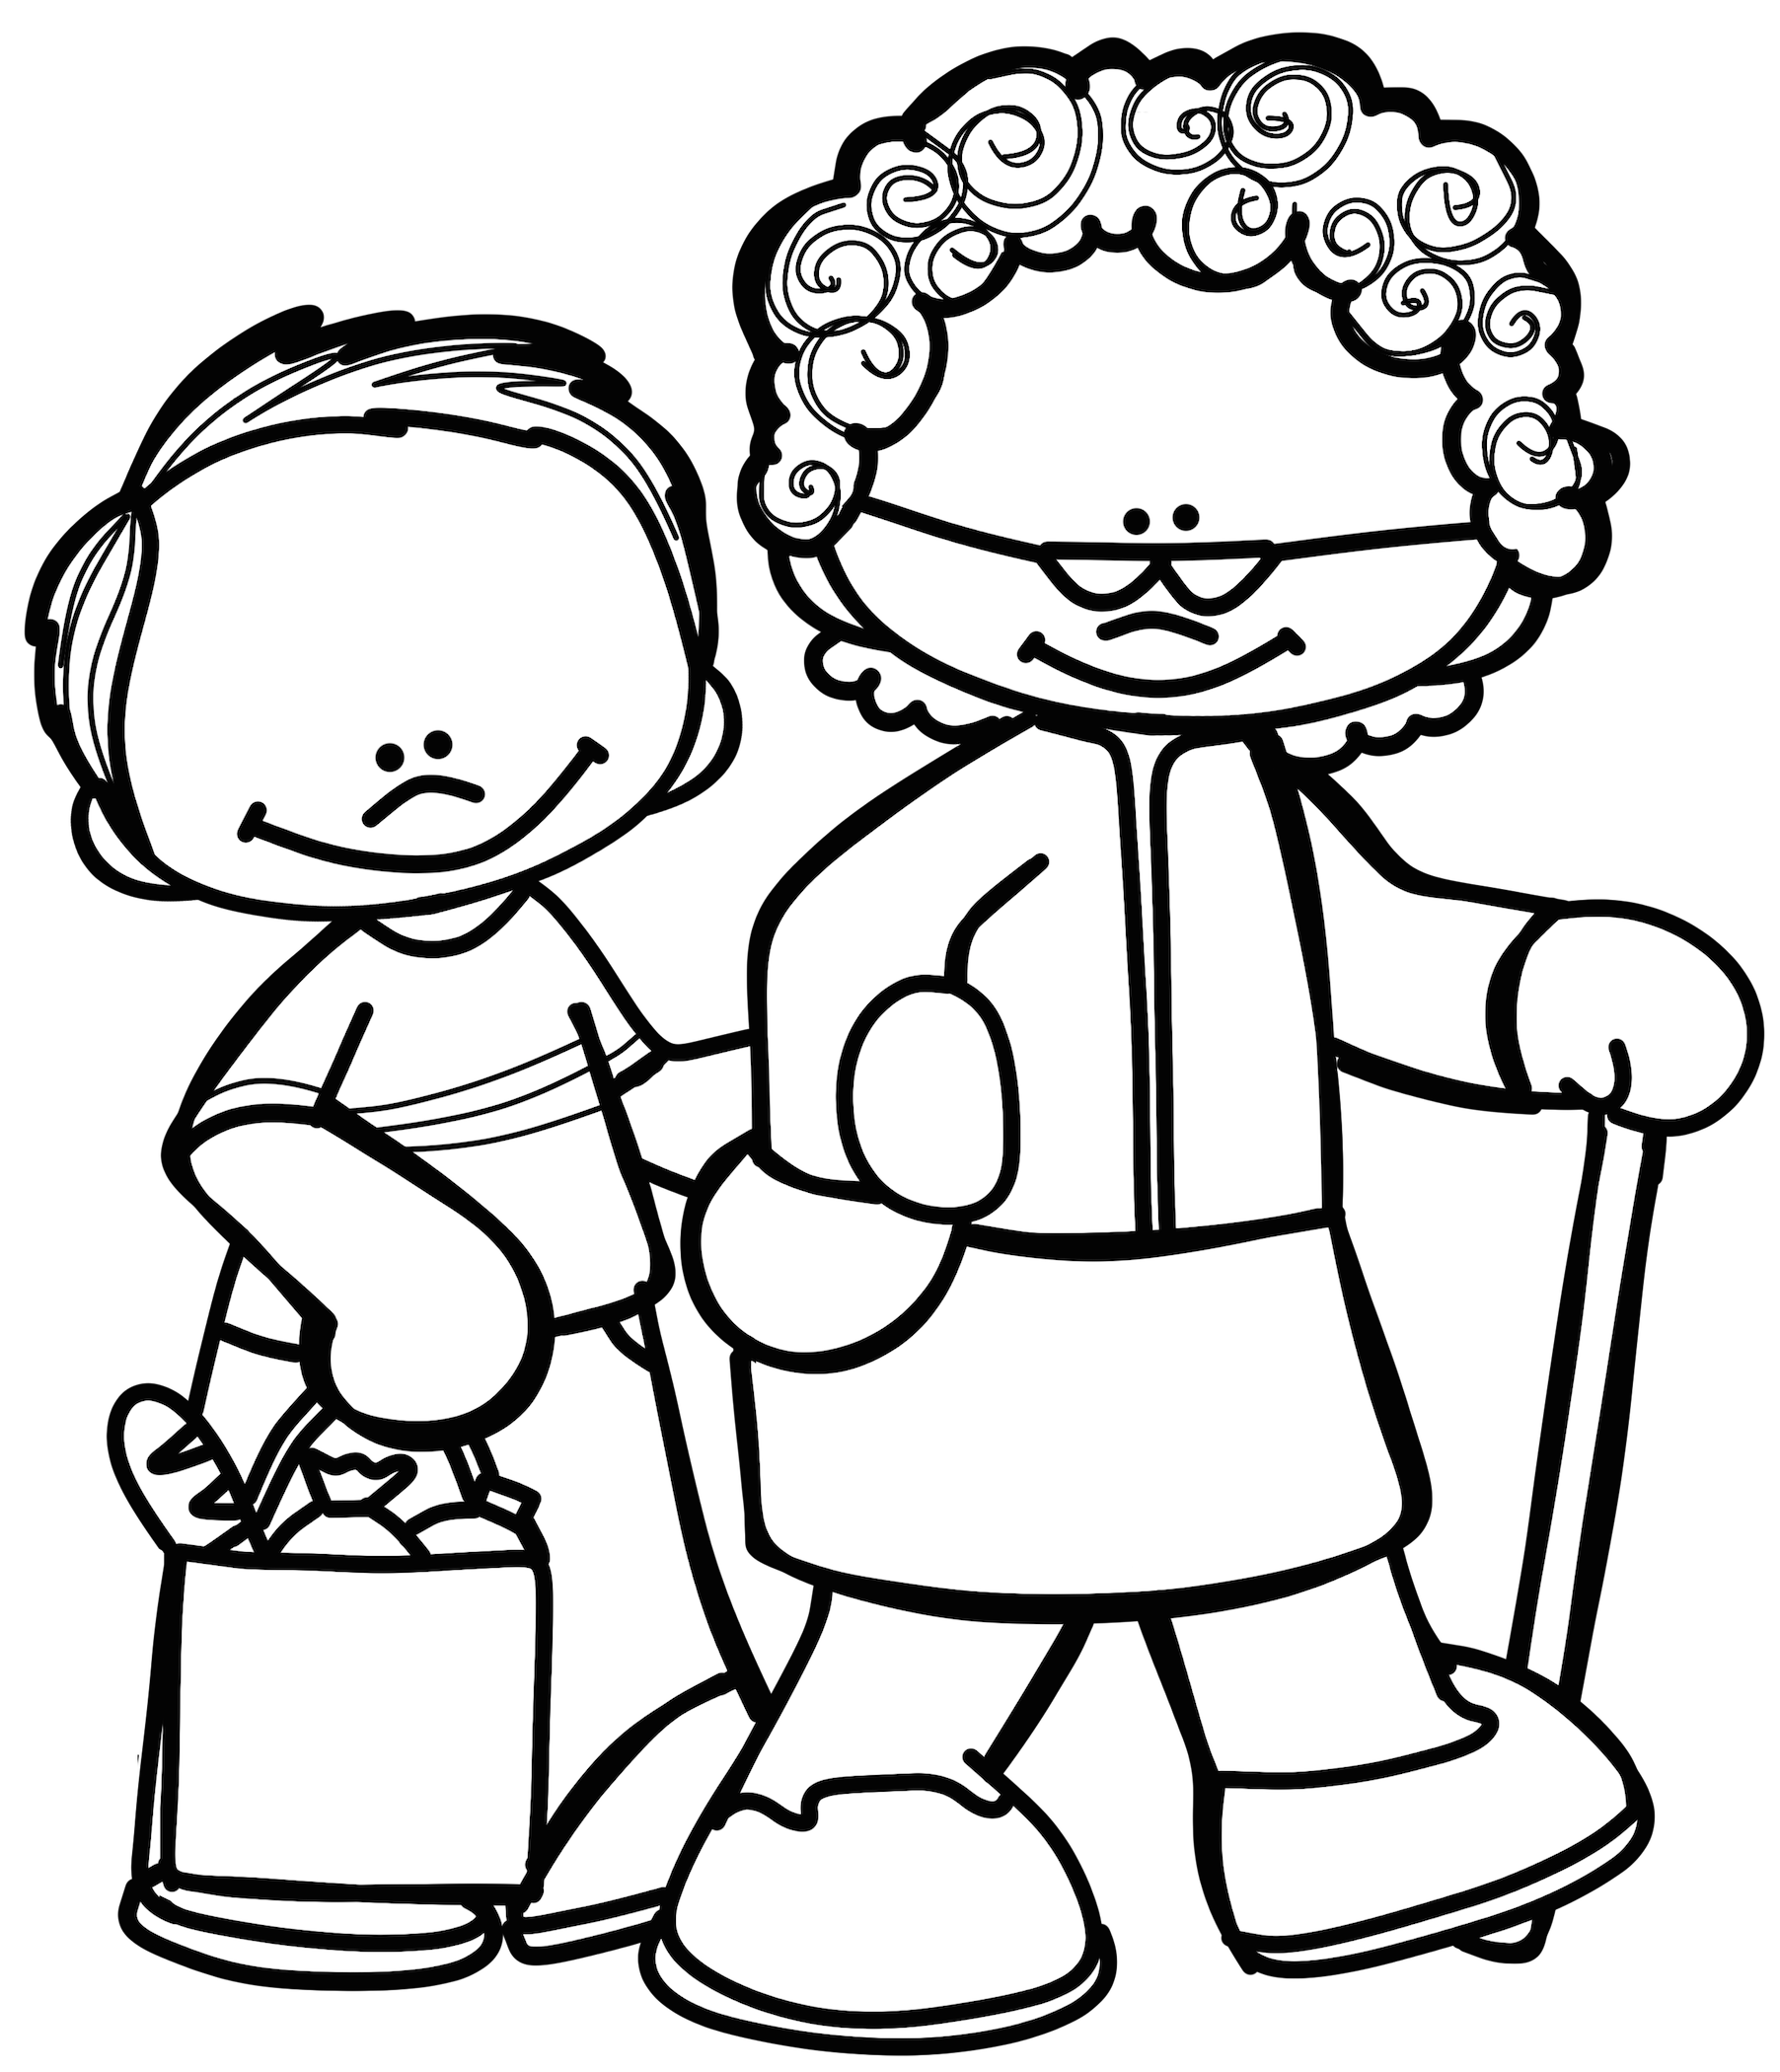 Pin By Anna Szyn On Dibujos Sin Fondo Png In 2020 Coloring Pages Clip Art Colouring Pages